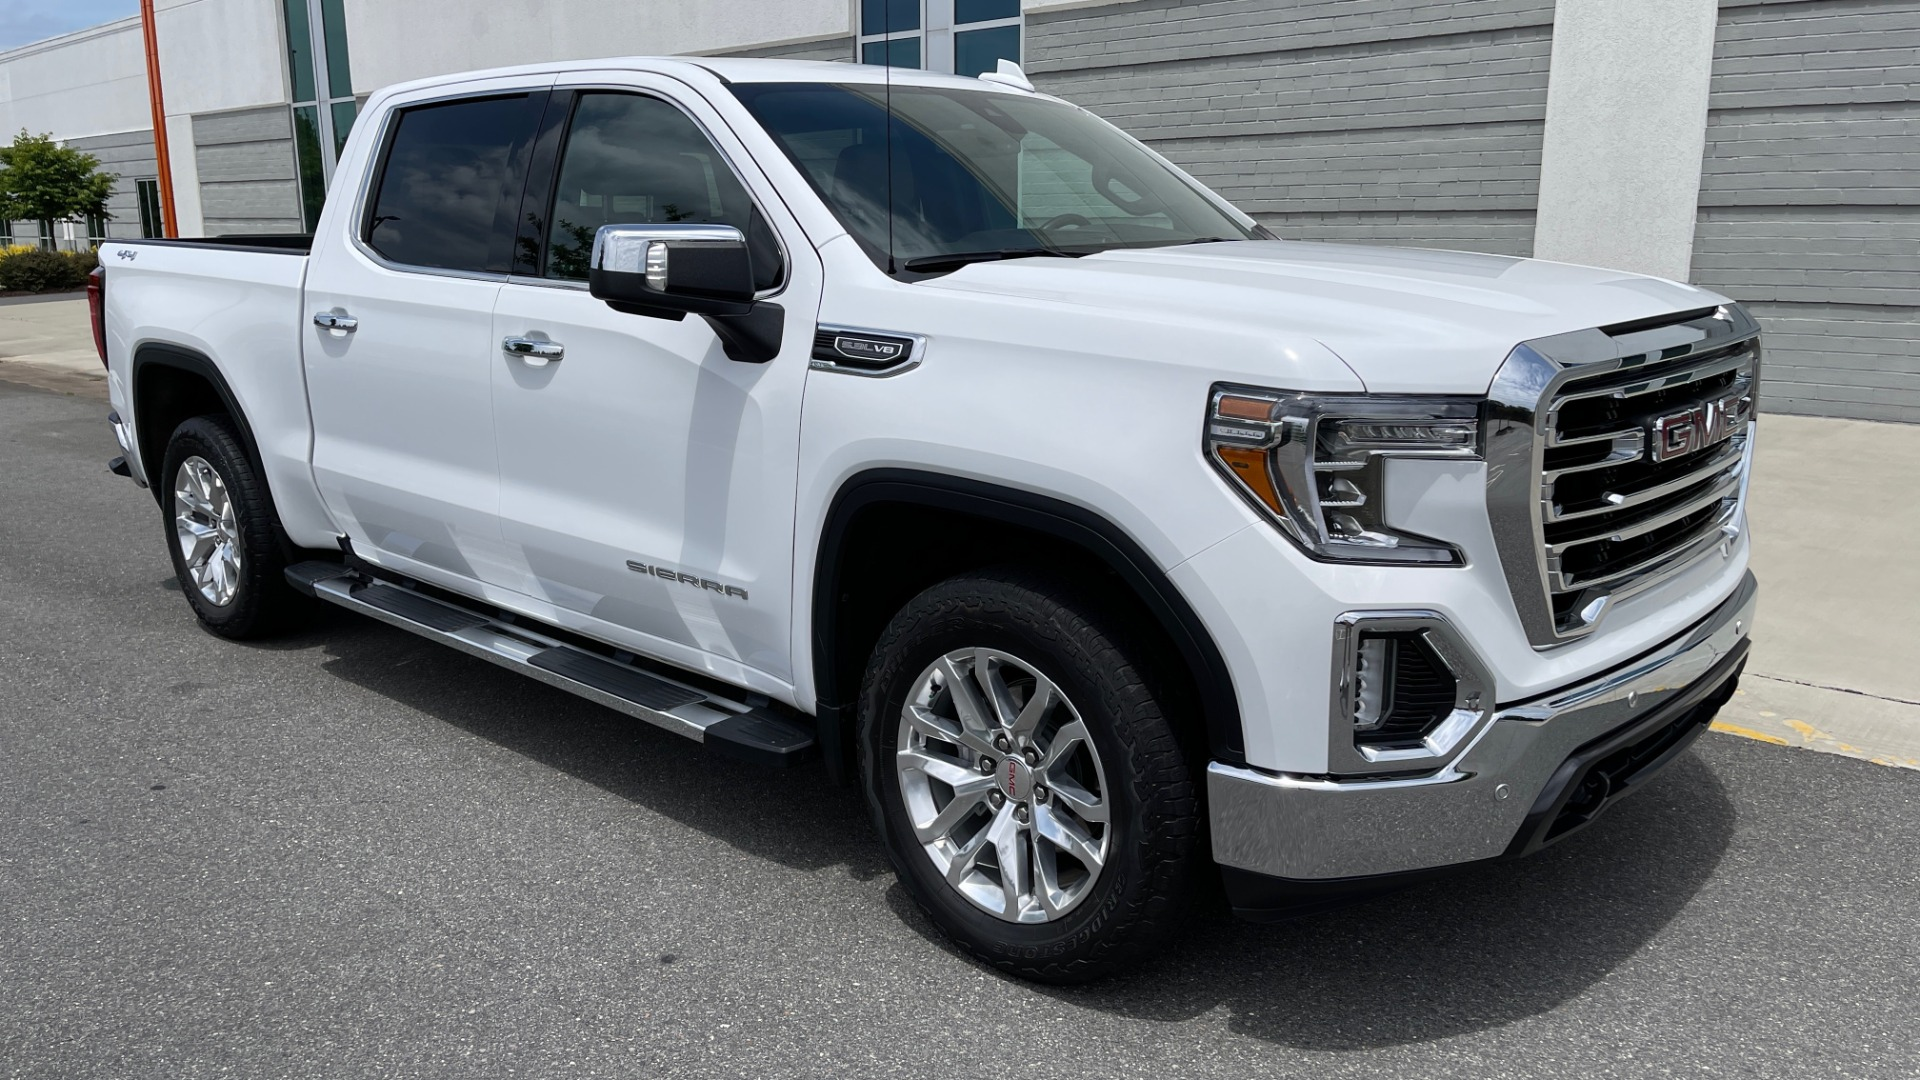 Used 2019 GMC SIERRA 1500 SLT 4X4 CREWCAB / 5.3L V8 / 8-SPD AUTO / NAV / BOSE / REARVIEW for sale $49,999 at Formula Imports in Charlotte NC 28227 6